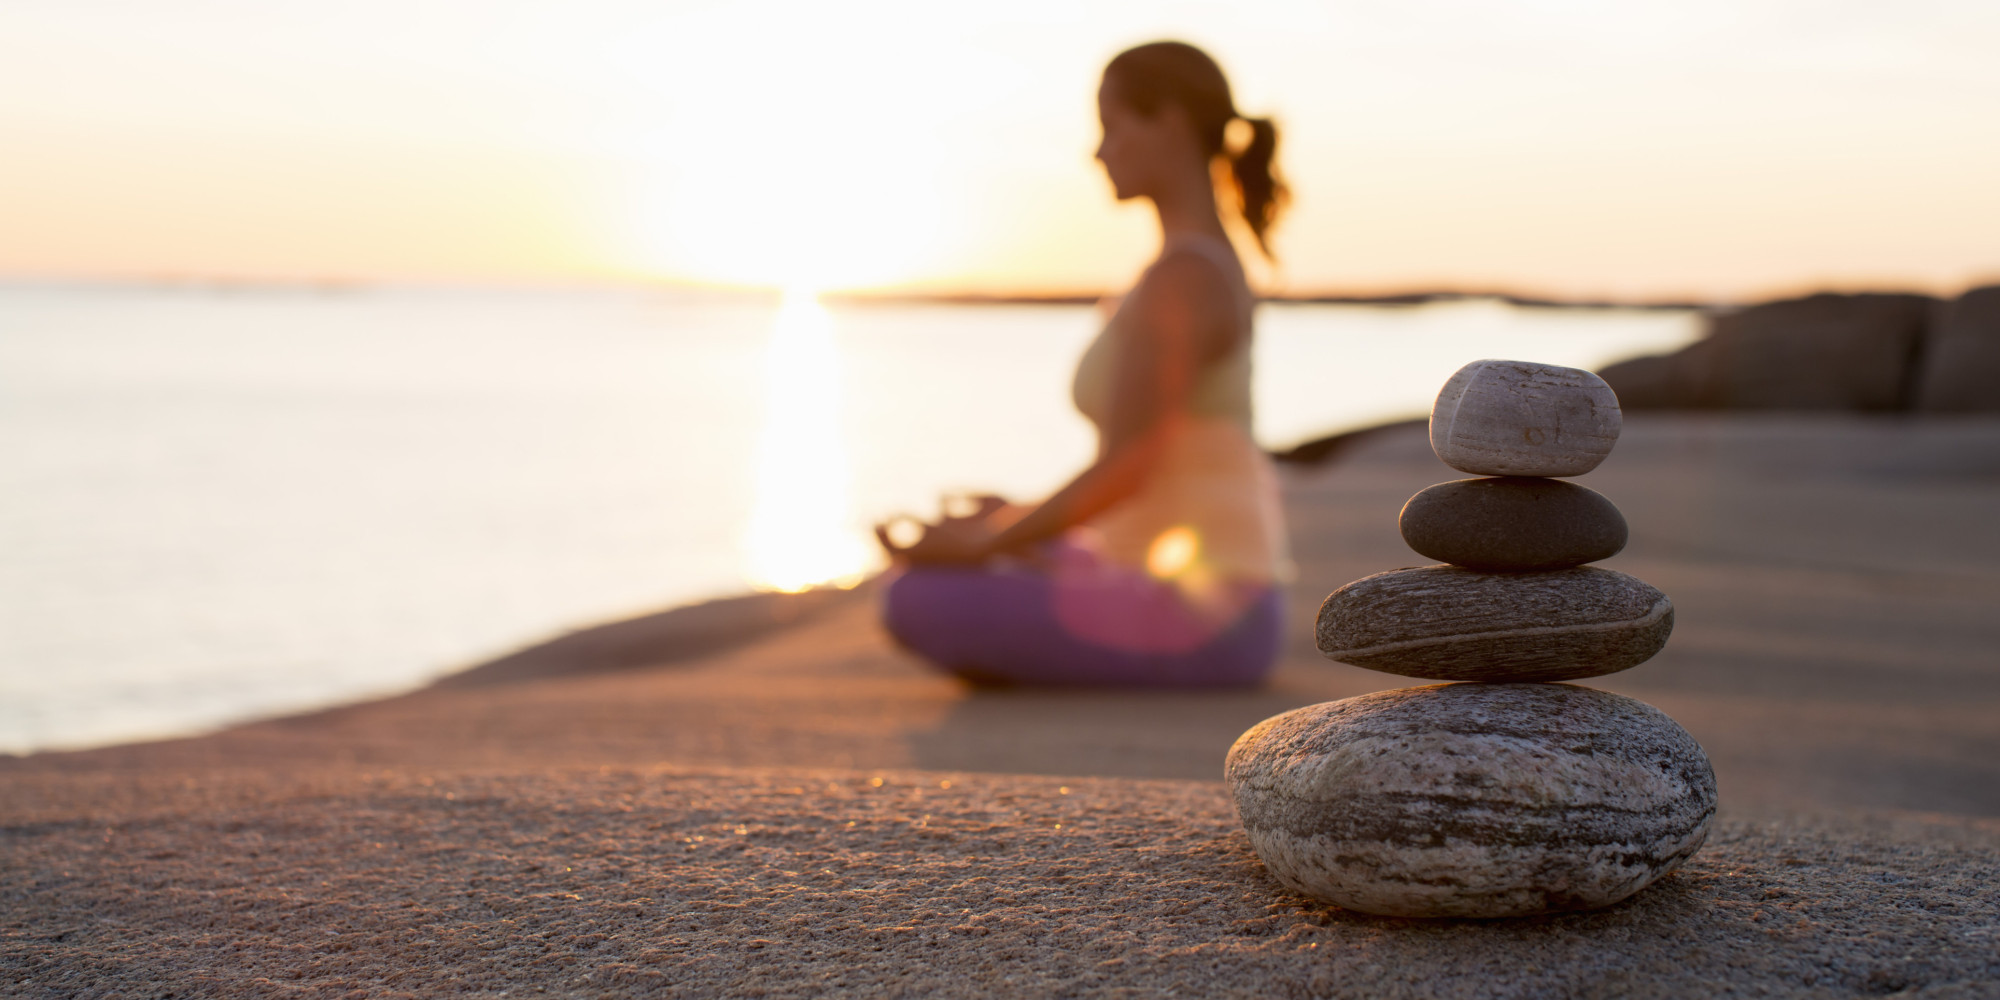 A Six Step Guide for Meditation for Beginners